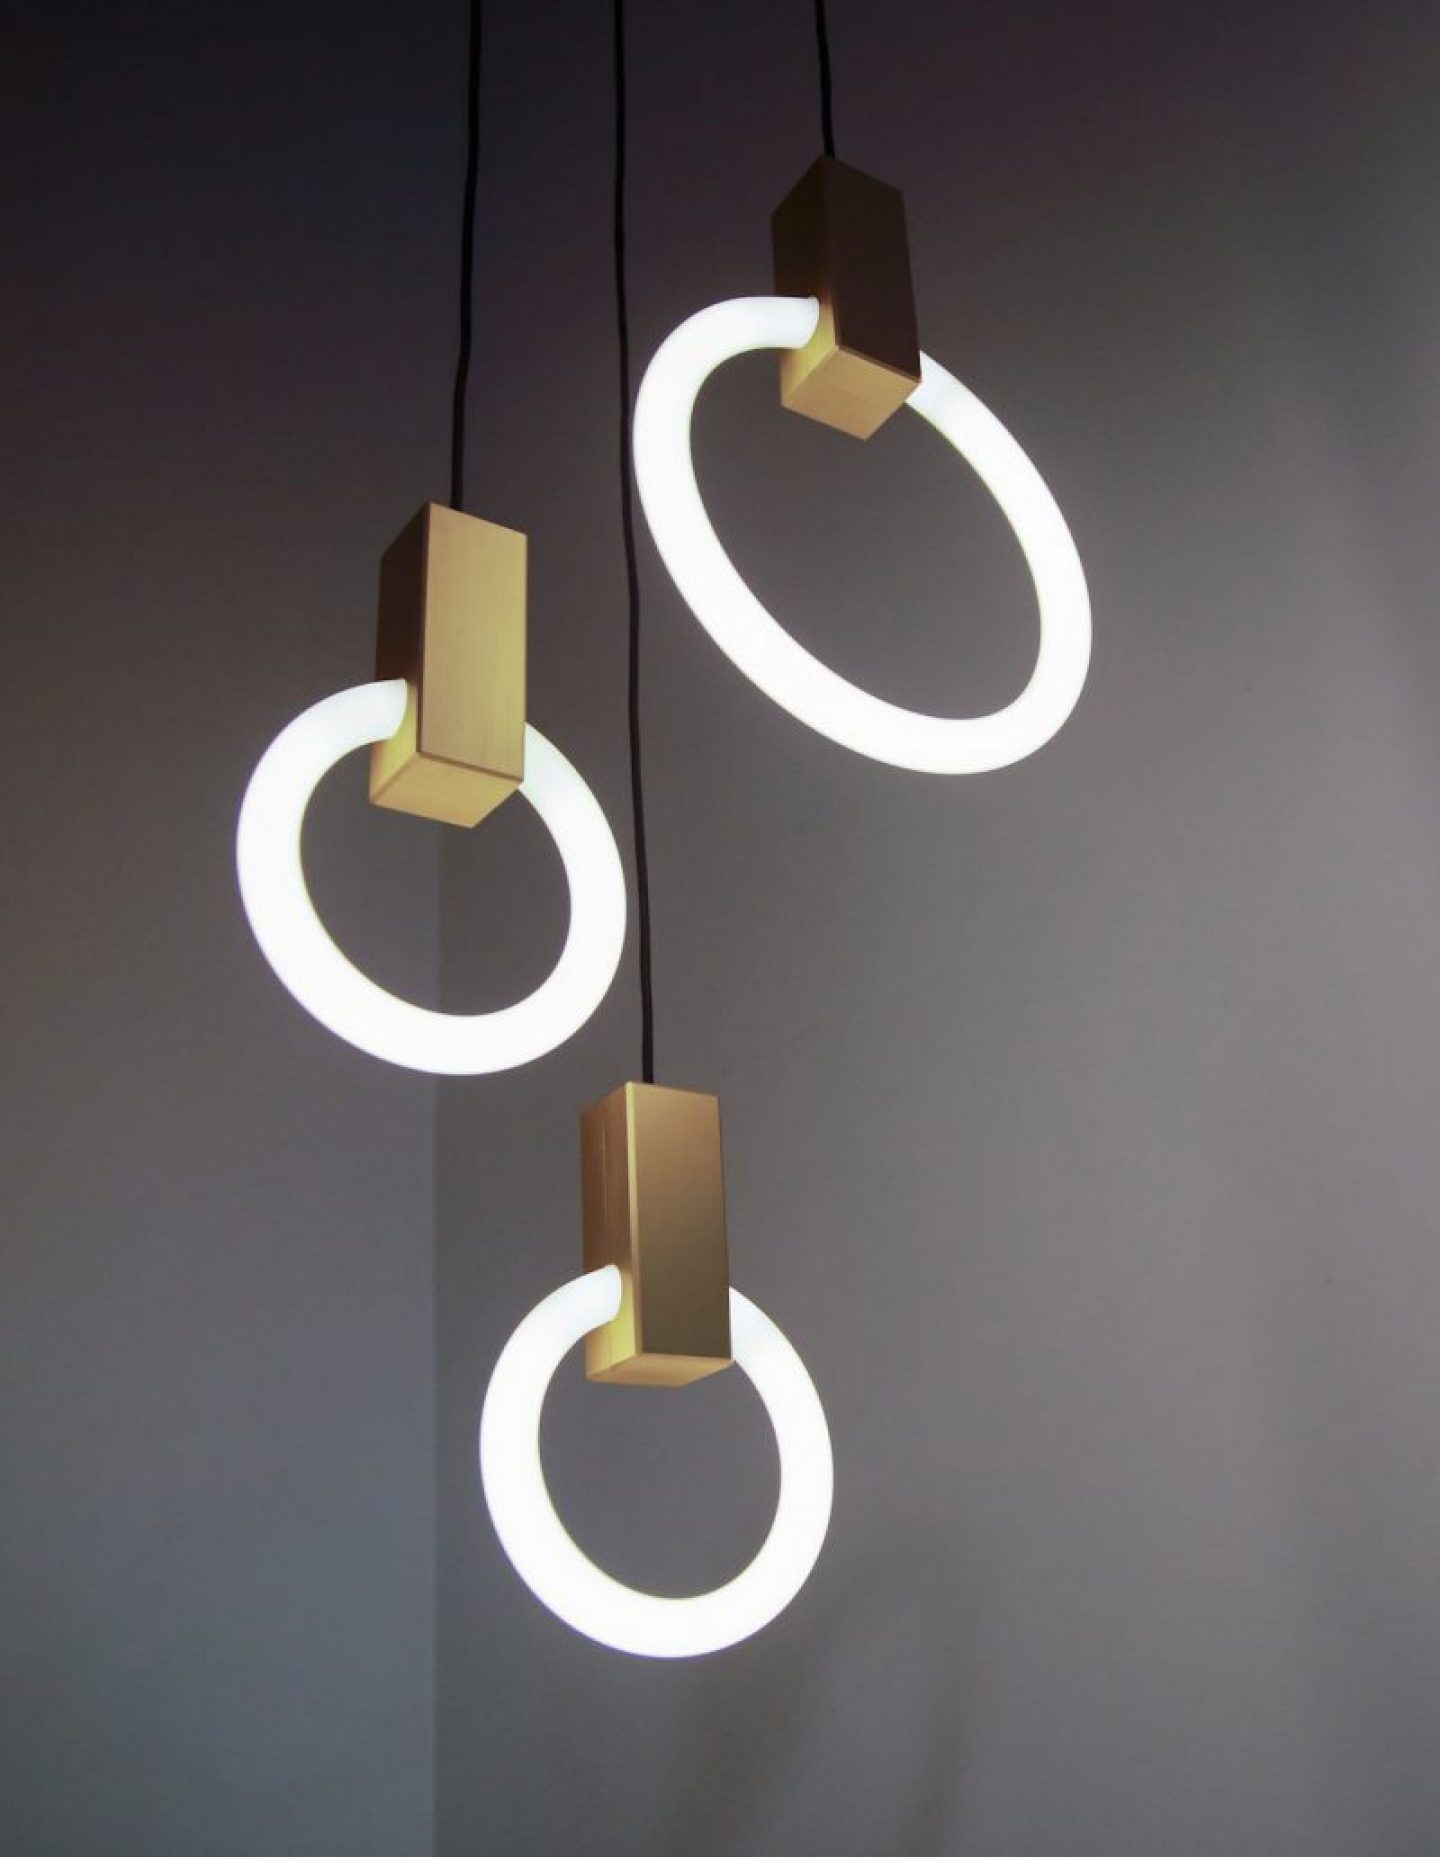 Design_Halo_Lamp_Matthew_McCormick_Studio_17